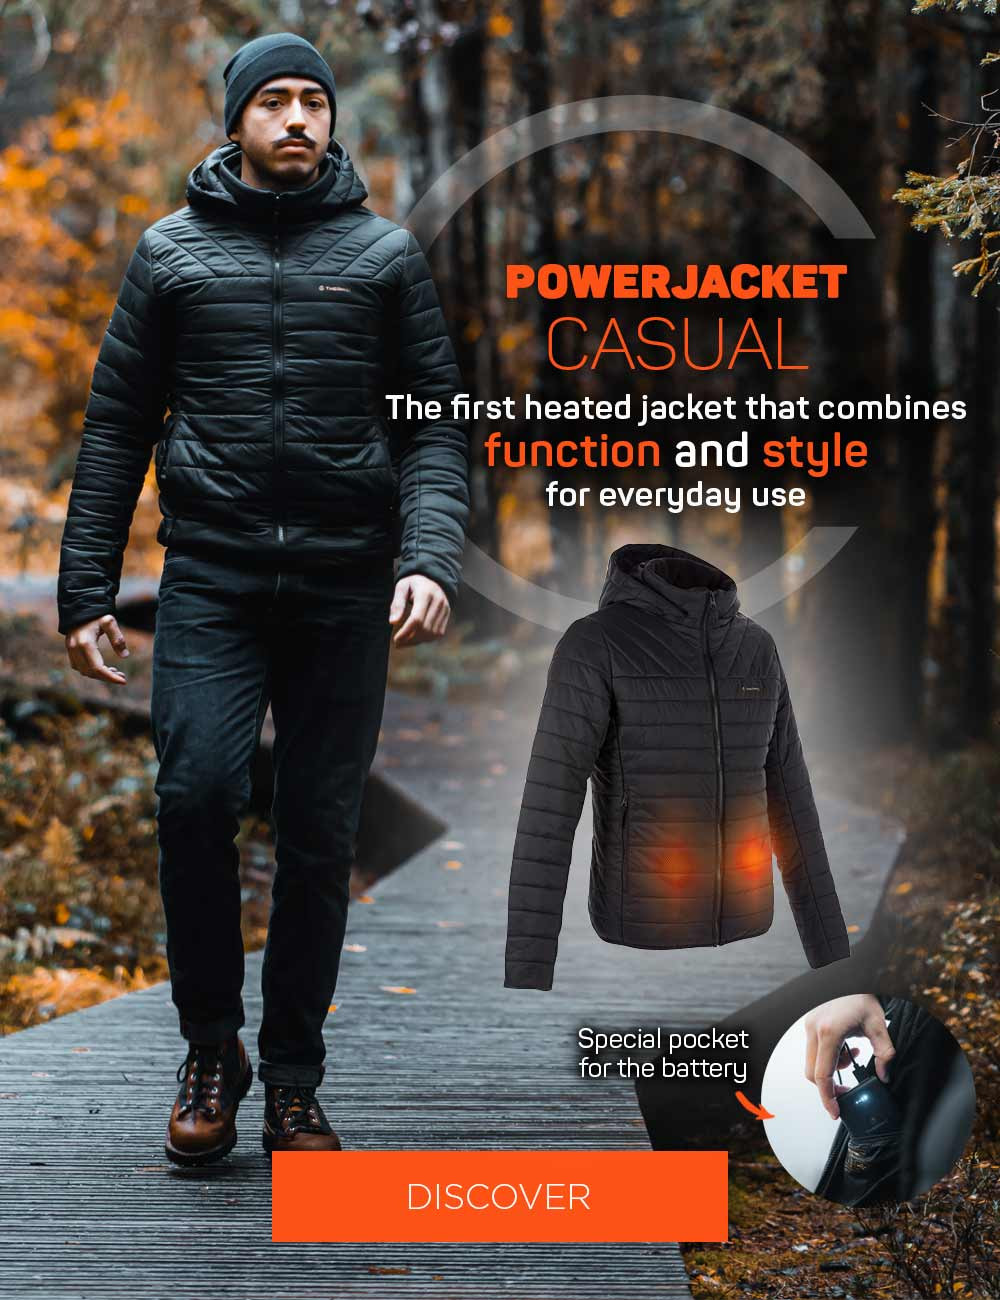 The first heated jacket that combines function and style for everyday use!